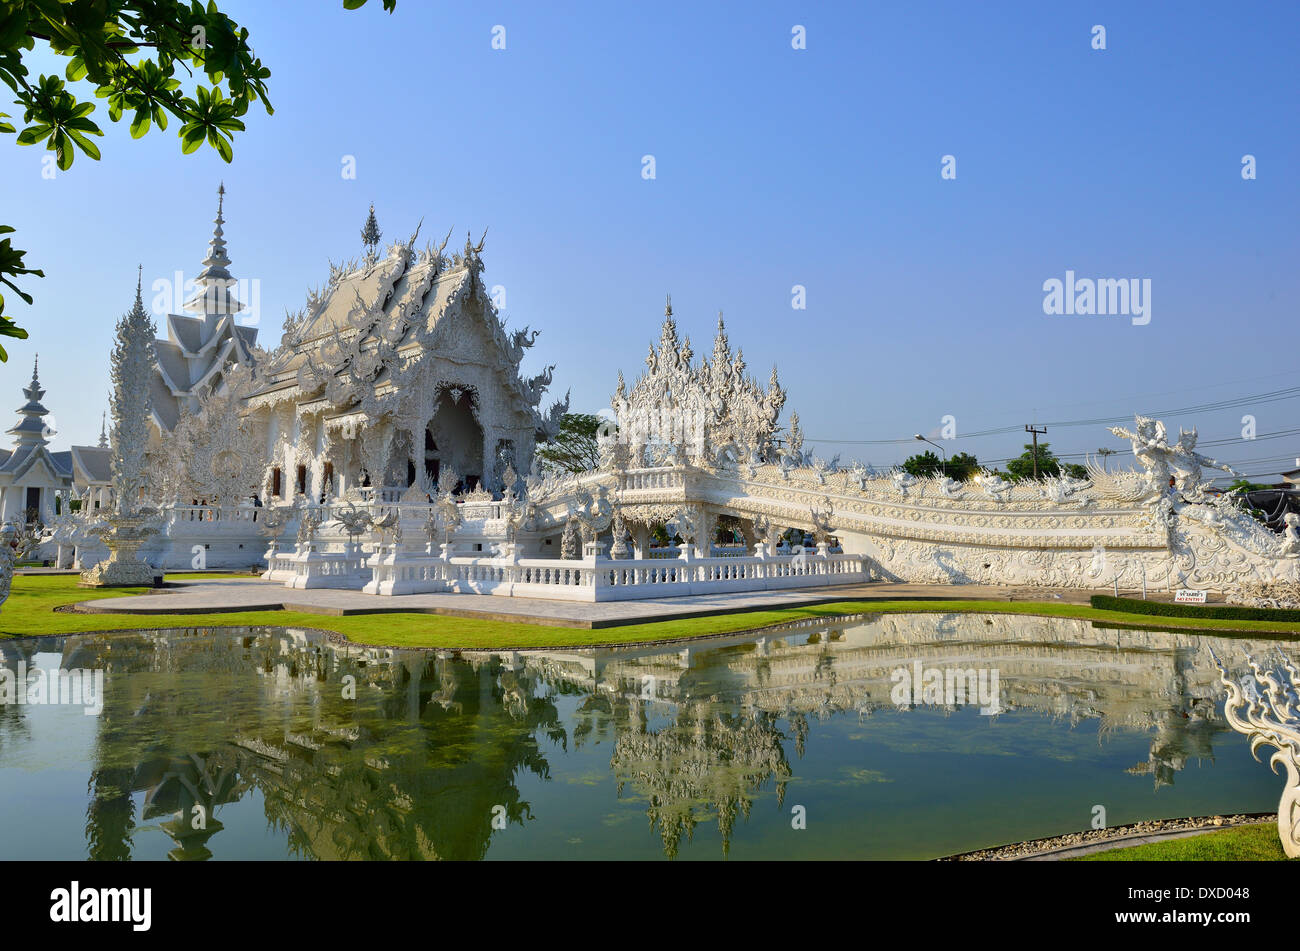 """Wat Rong Khun,better known as """"the White Temple"""" is  in the style of a Buddhist temple is one of the most recognizable temples - Stock Image"""